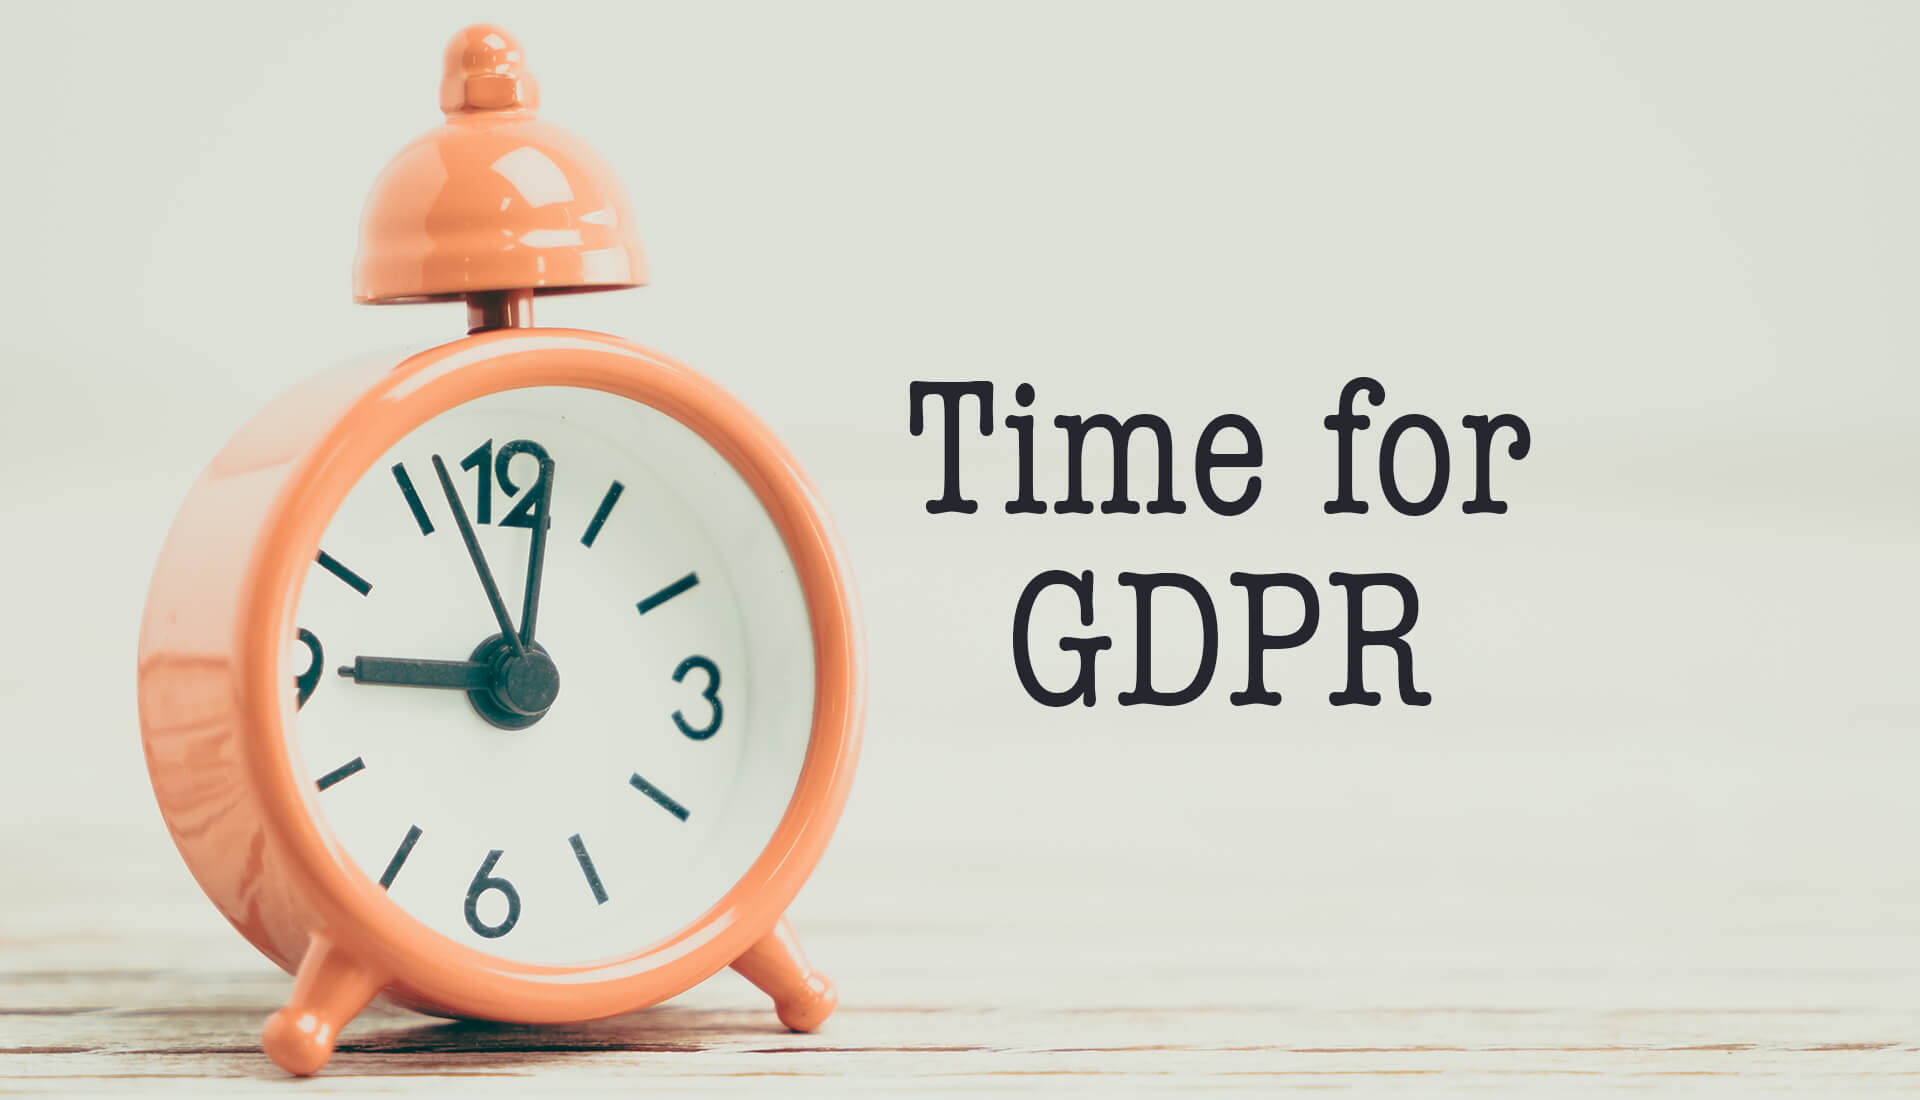 normativa-siti-web-GDPR-4words